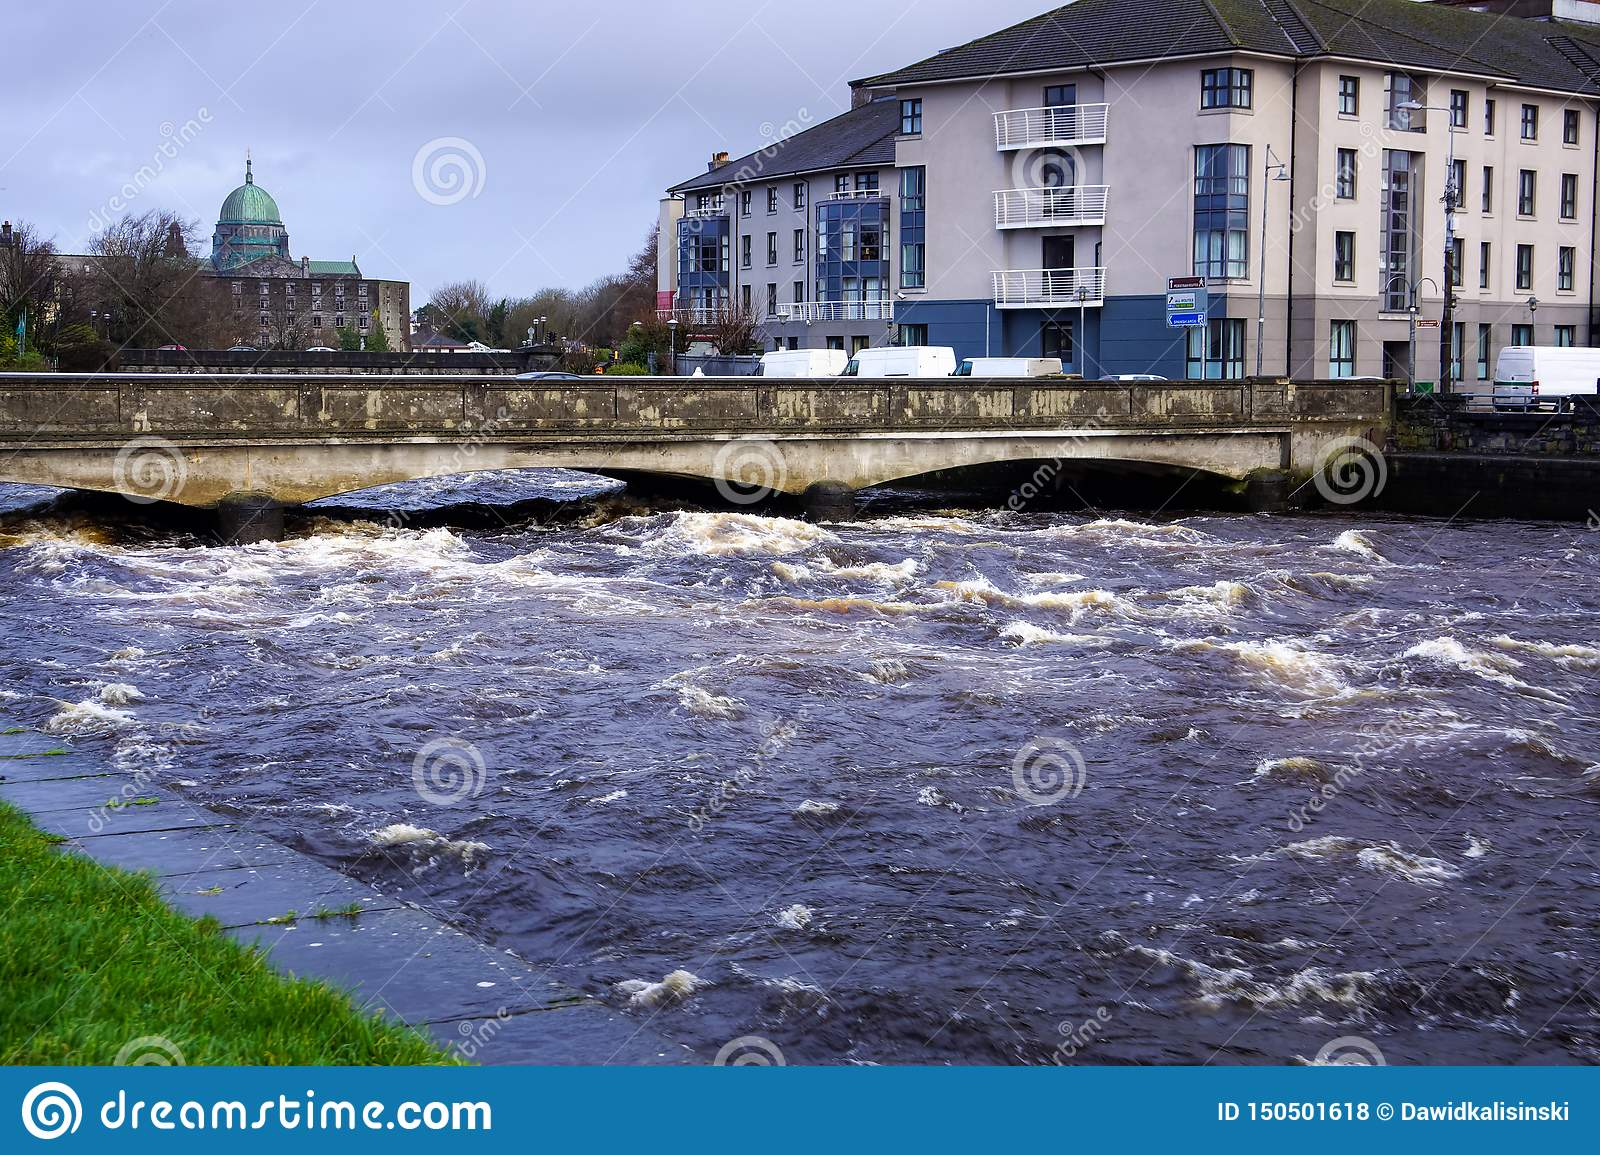 Strong current on river that about to go over bridge and riverbanks in Galway